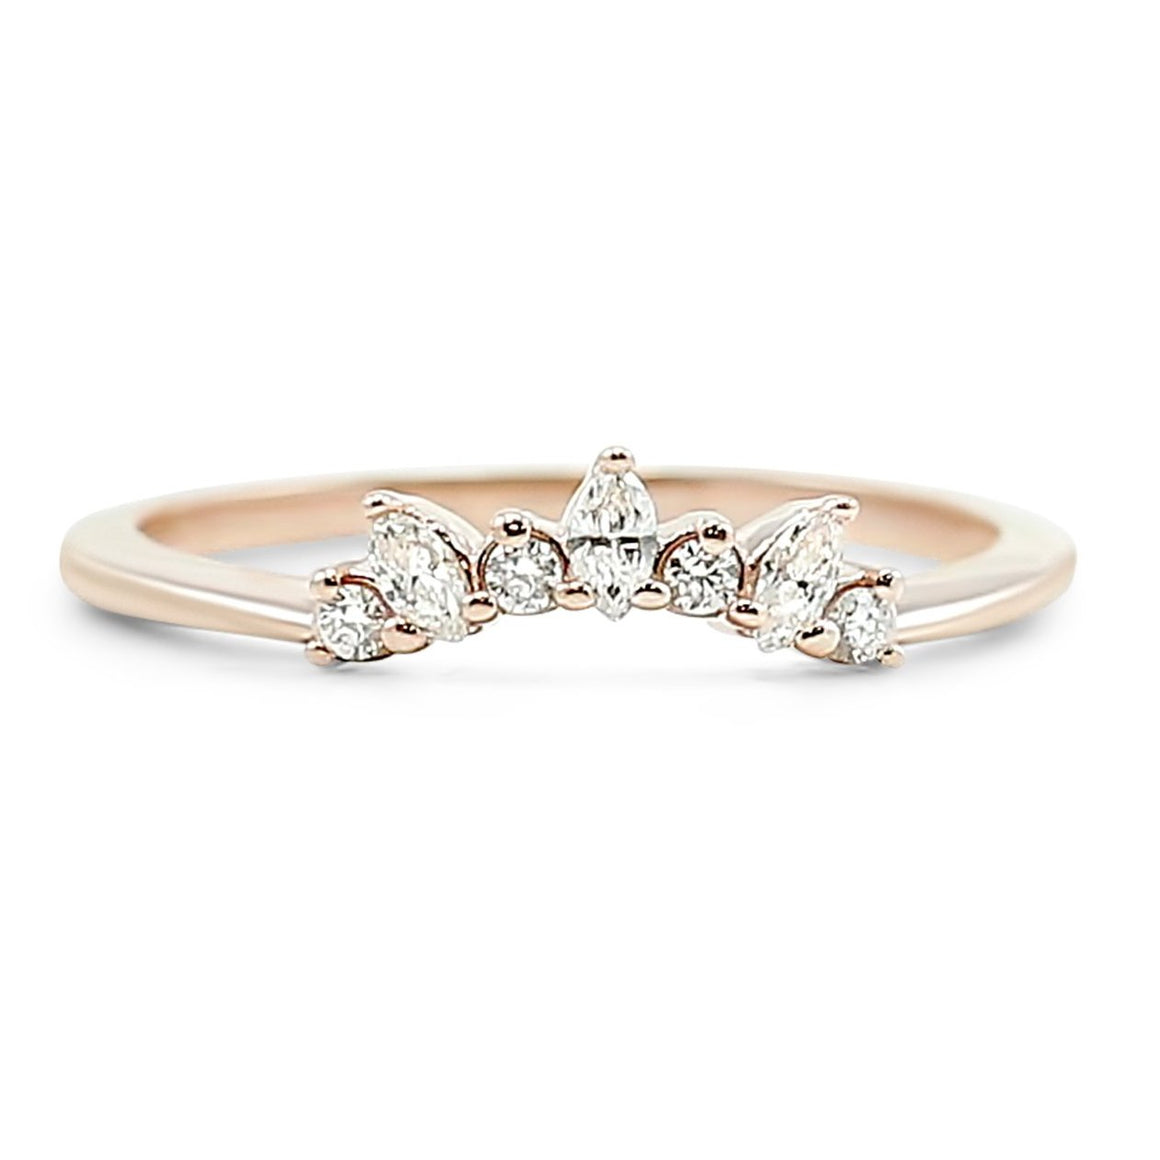 marquis and round diamond contour wedding band available in yellow rose and white gold